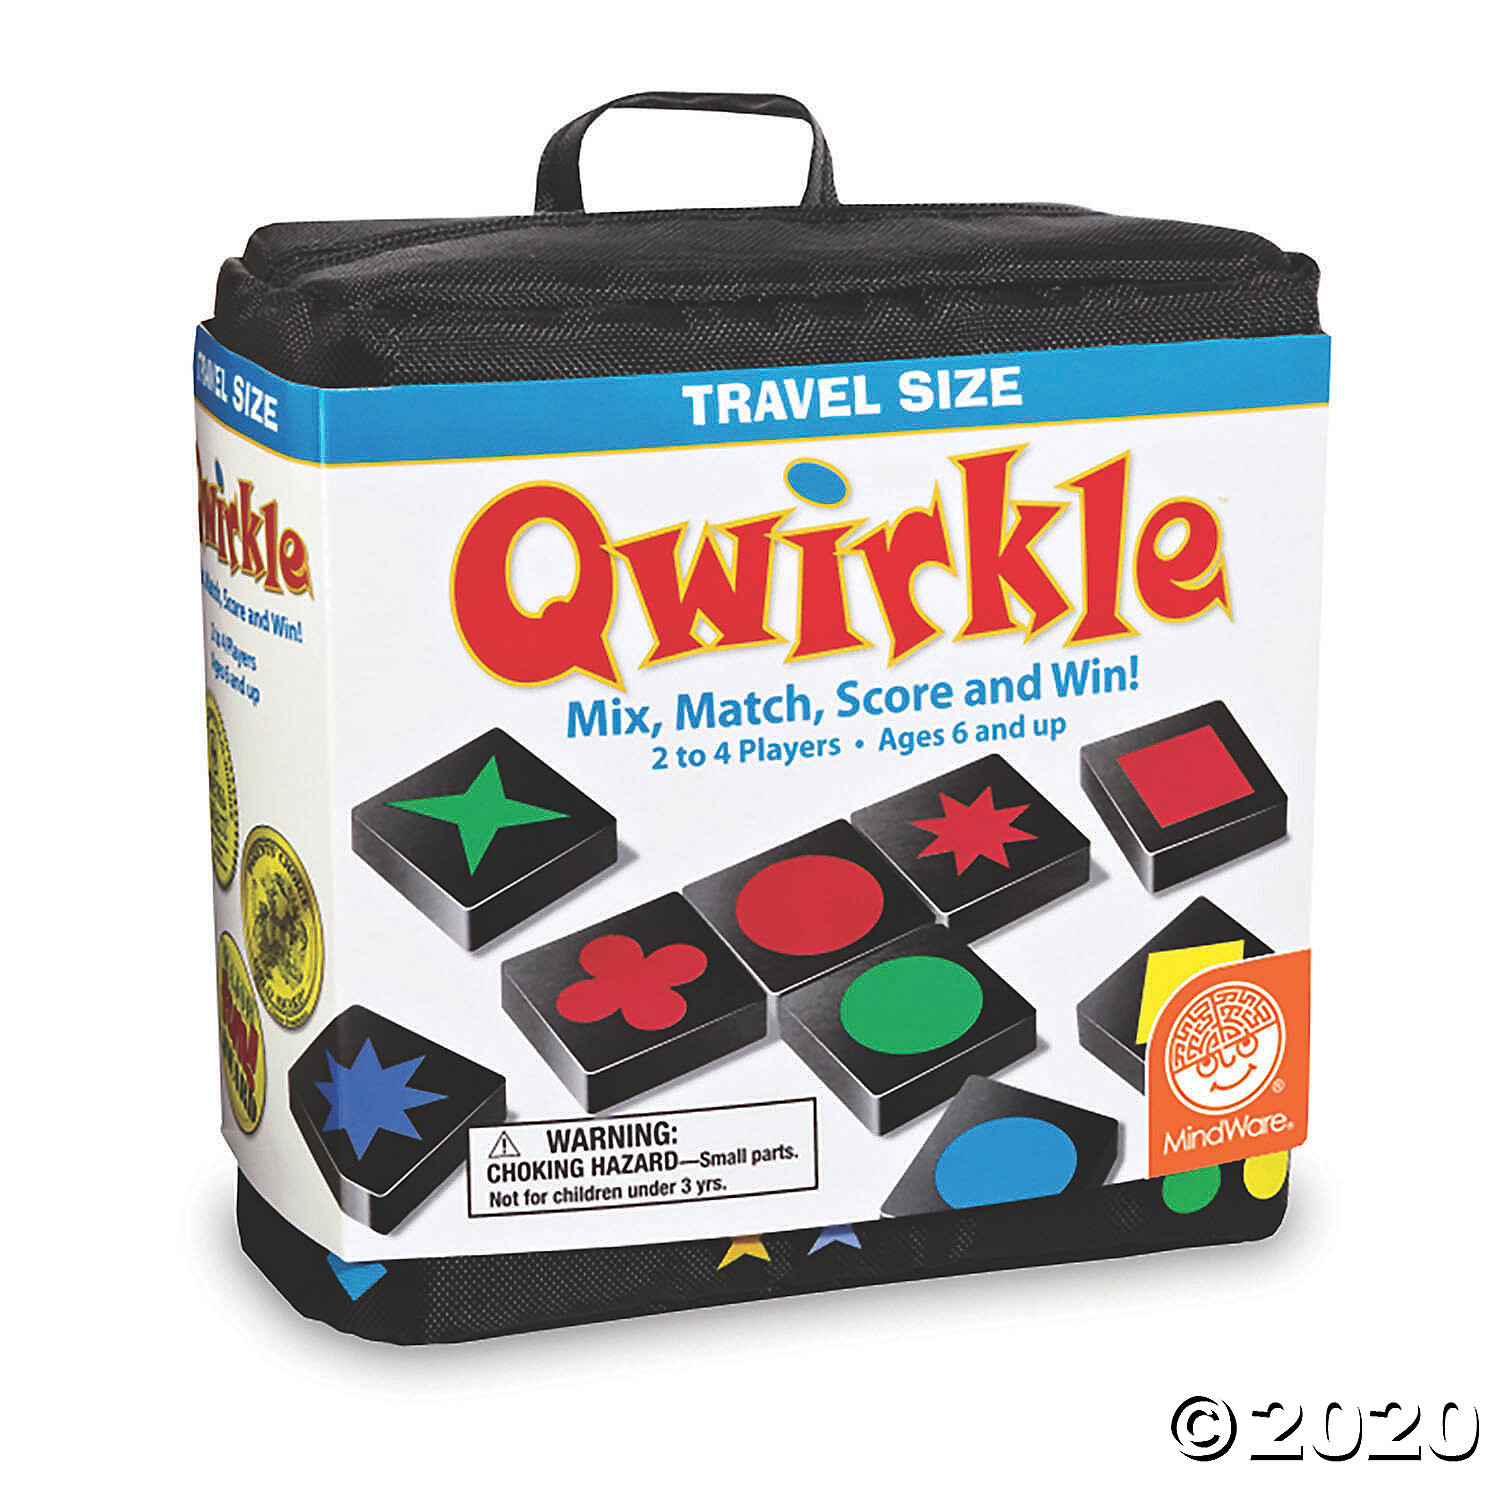 TRAVEL SIZE QUIRKLE